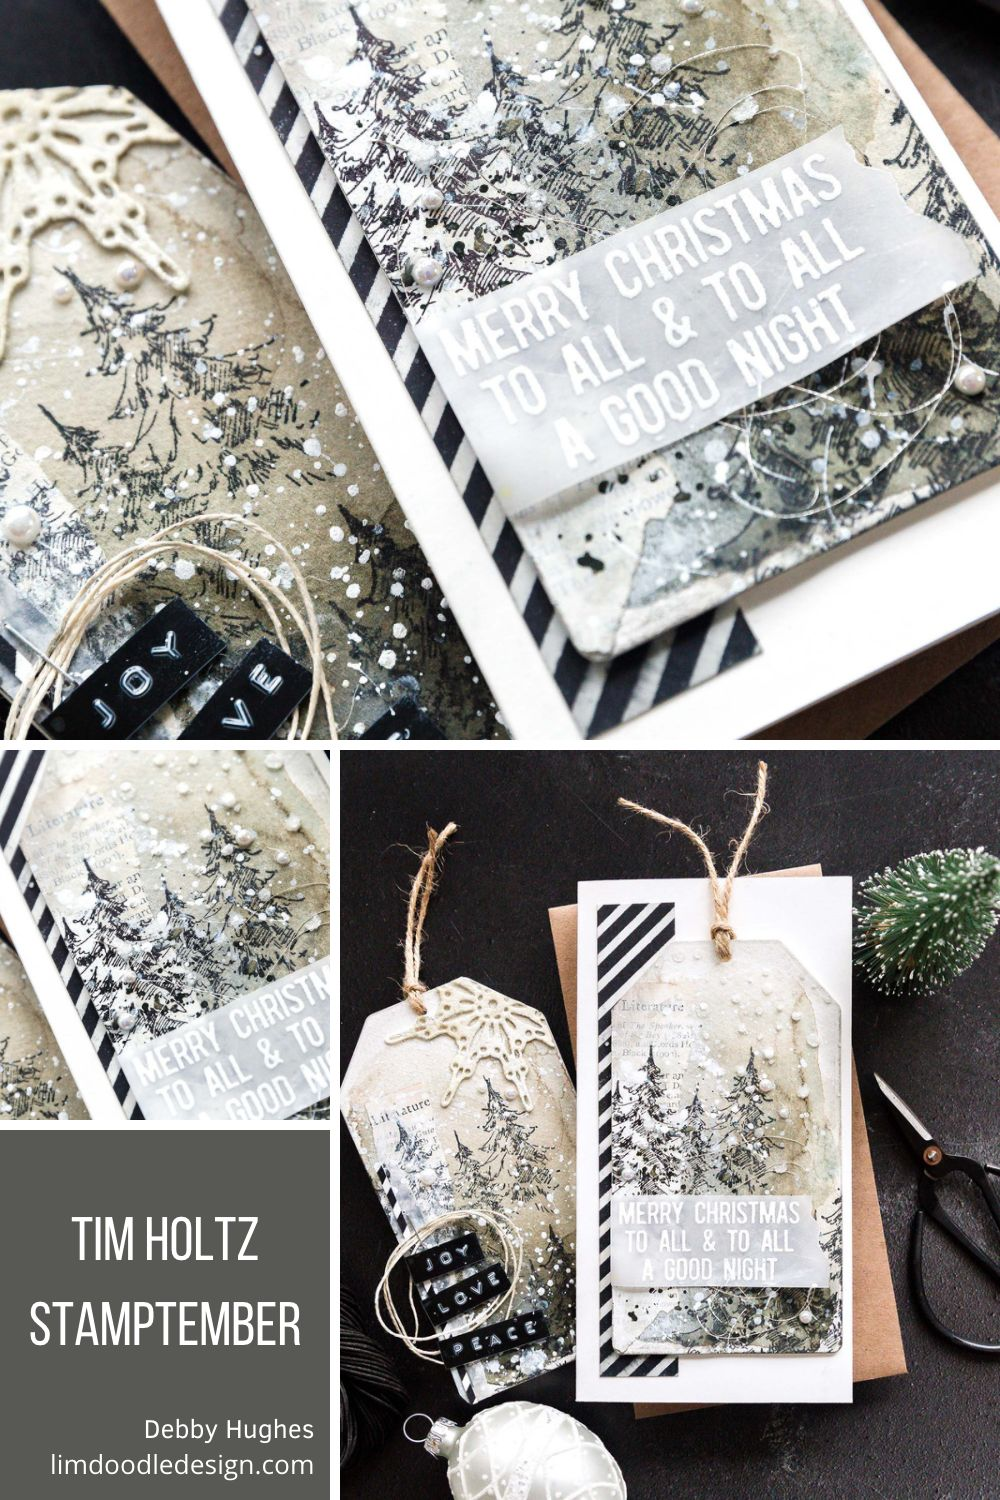 Cards and tags using the Tim Holtz exclusive, limited edition STAMPtember 2021 set. Handmade card & tag designs by Debby Hughes.